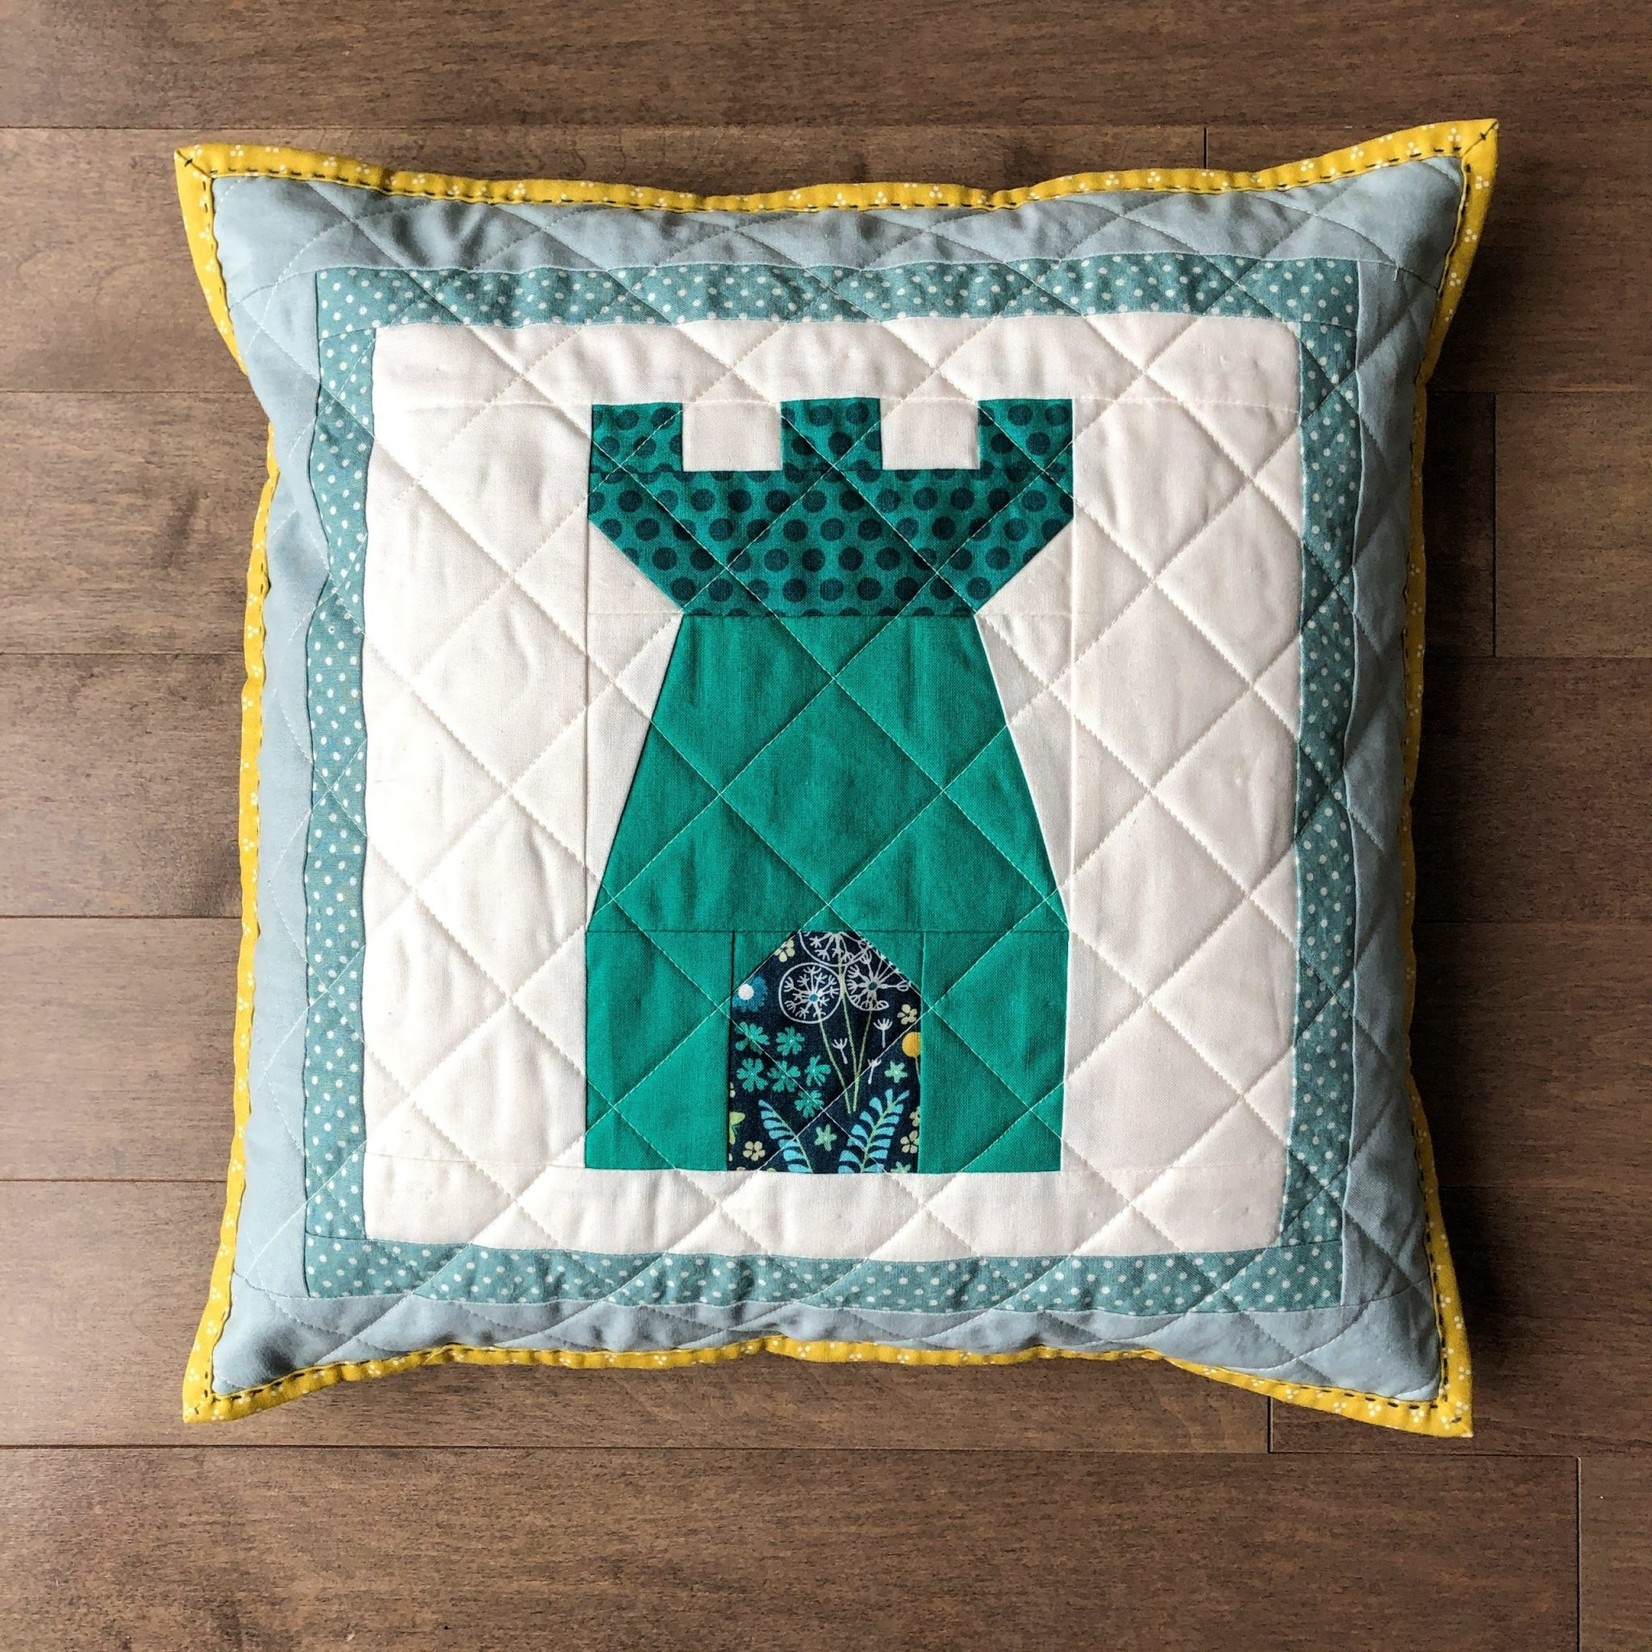 Apples & Beavers Little Kingdom Accent Pillow Covers Pattern